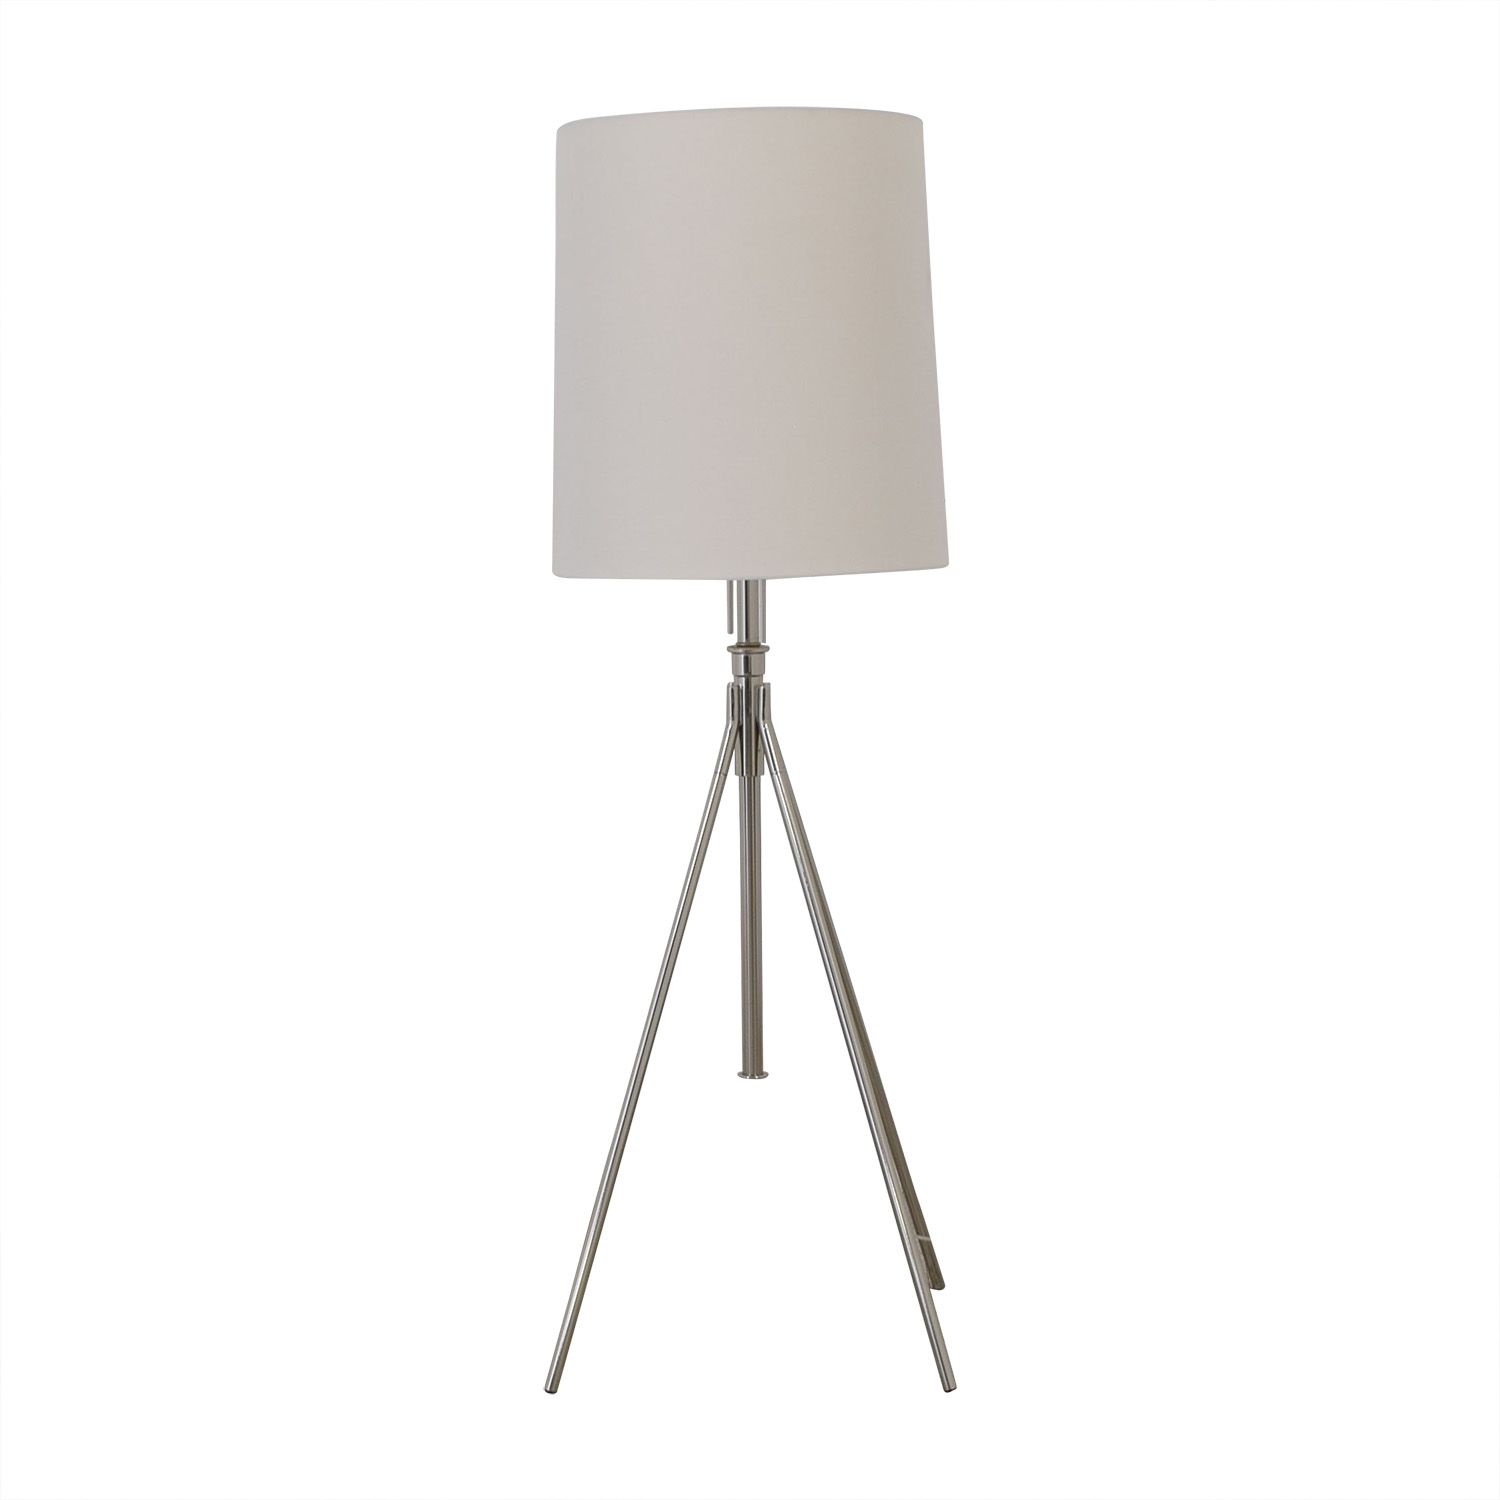 West Elm West Elm Tripod Lamp dimensions